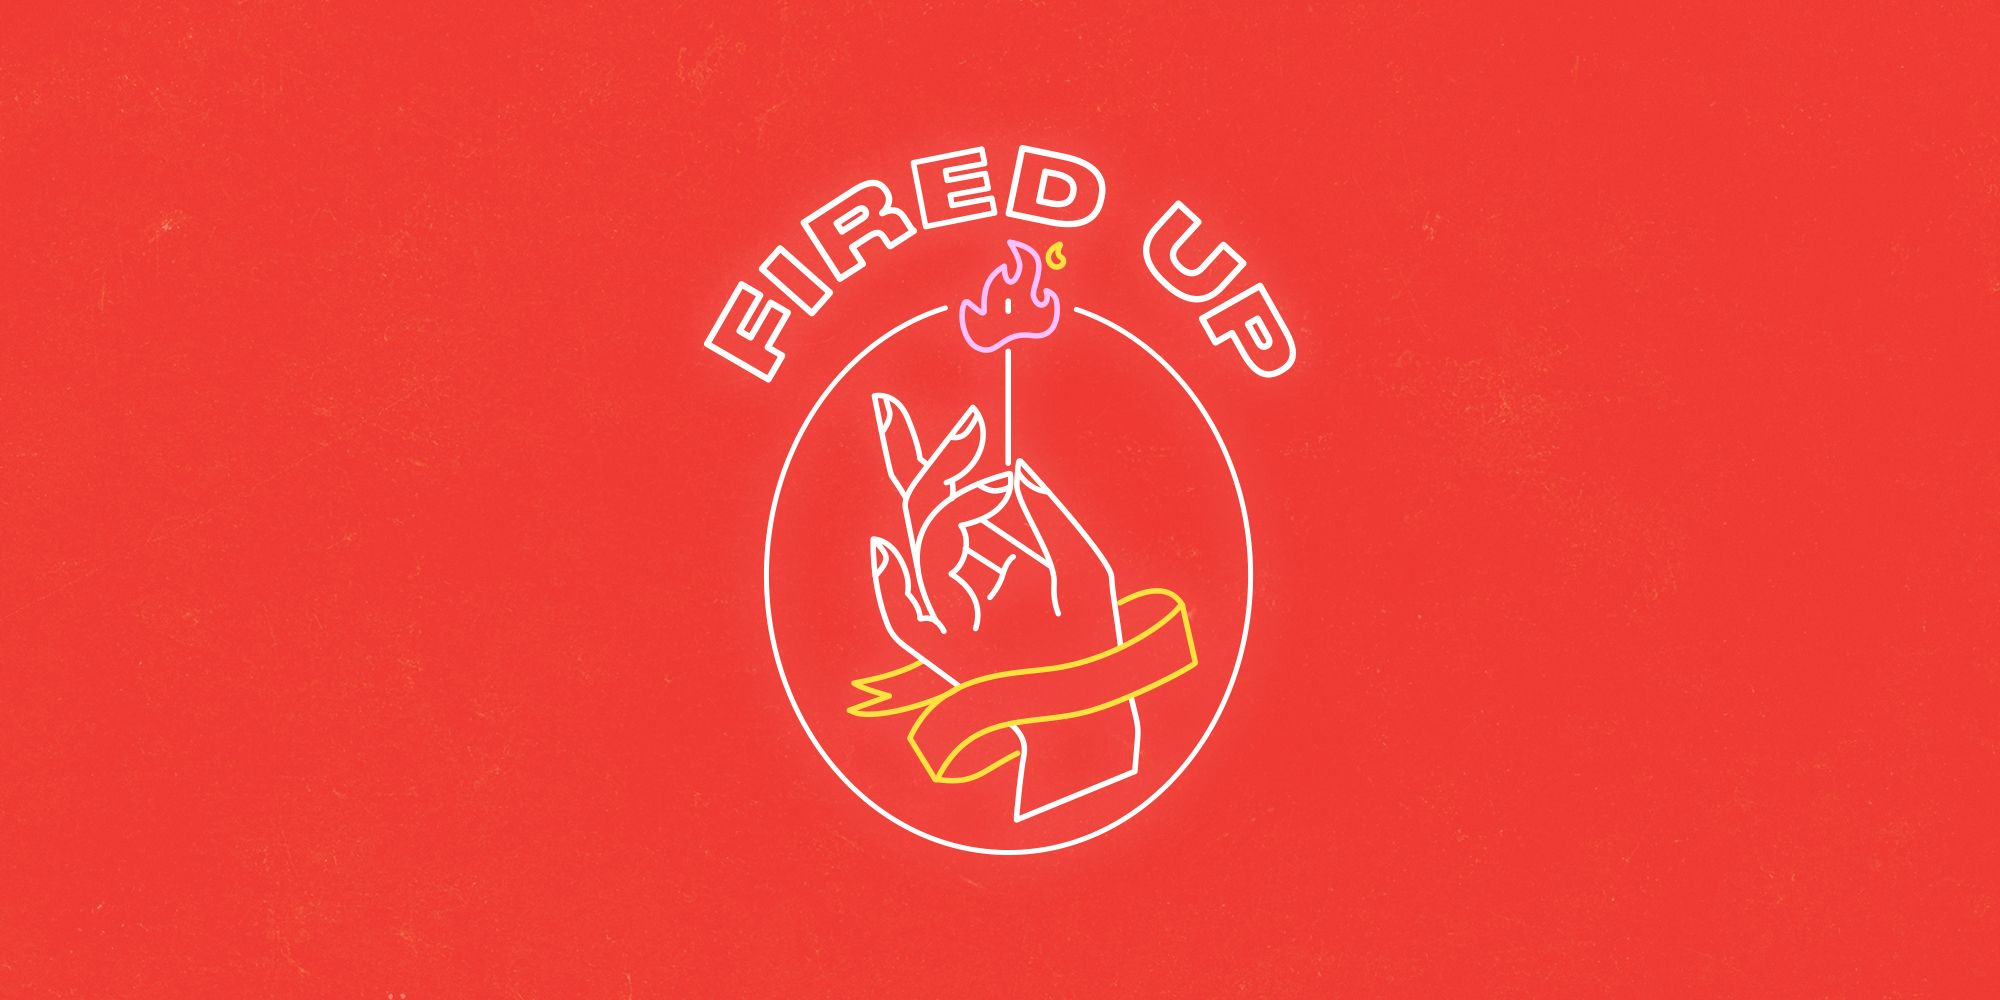 Fired Up! - Magazine cover